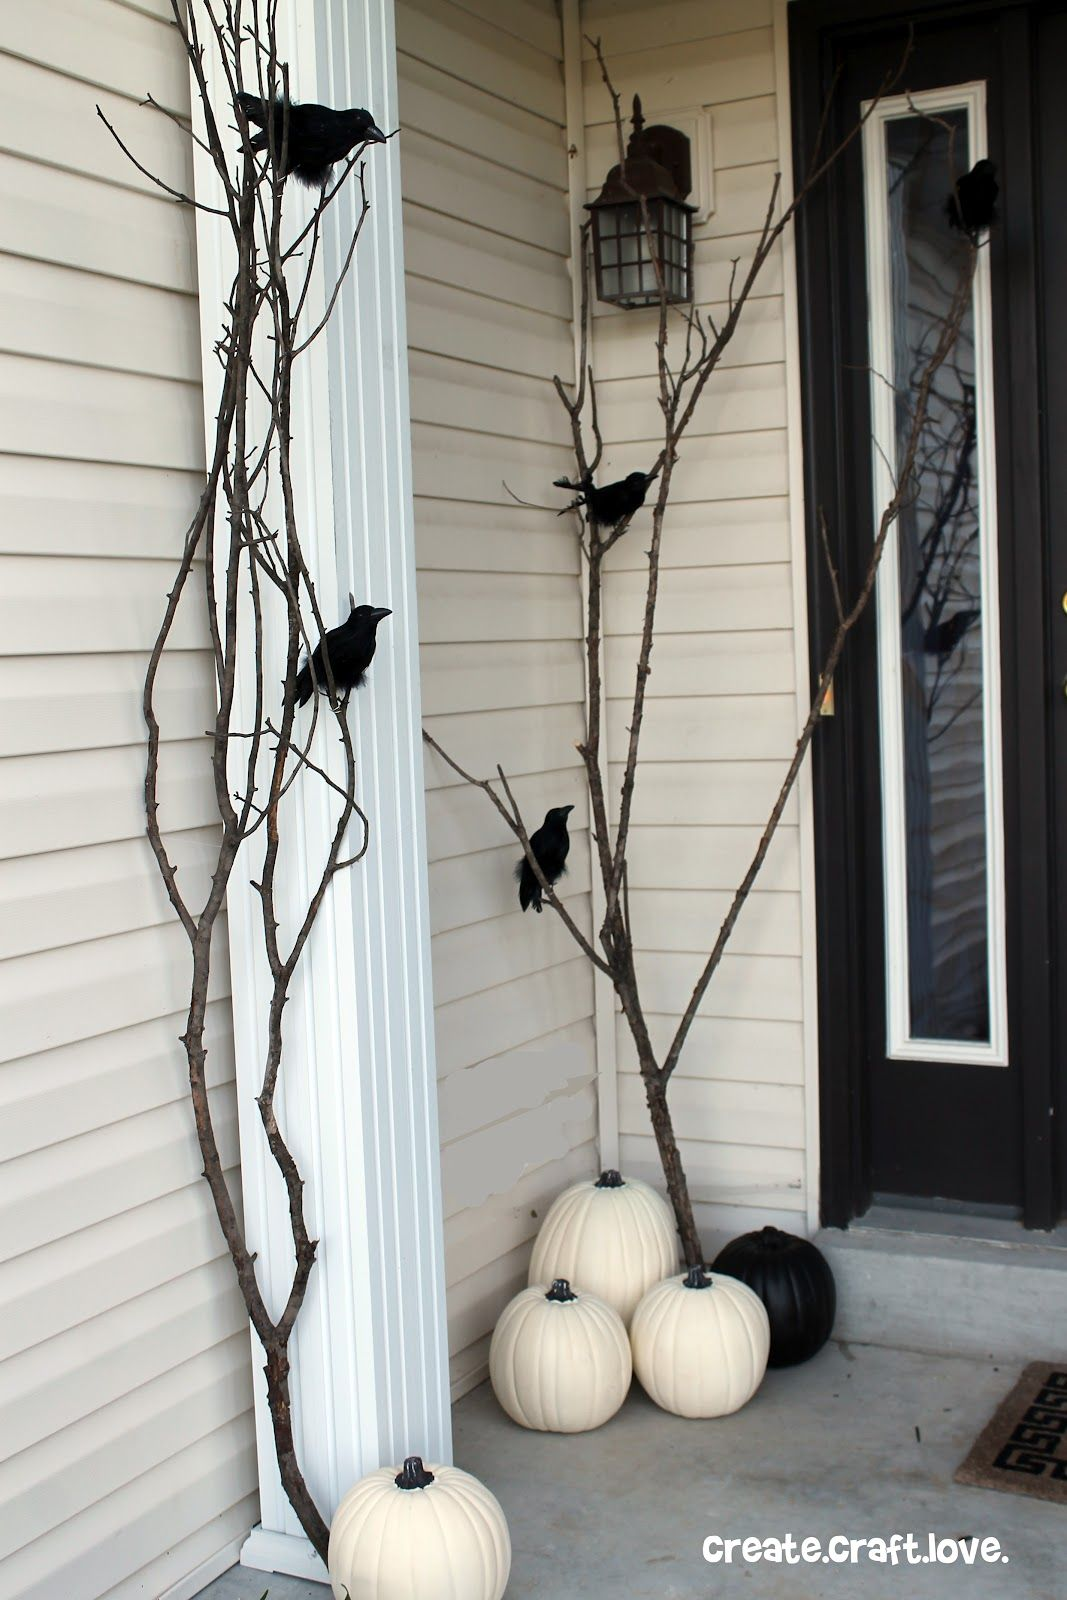 Raven Inspired Halloween Porch Easy Halloween Decor Idea